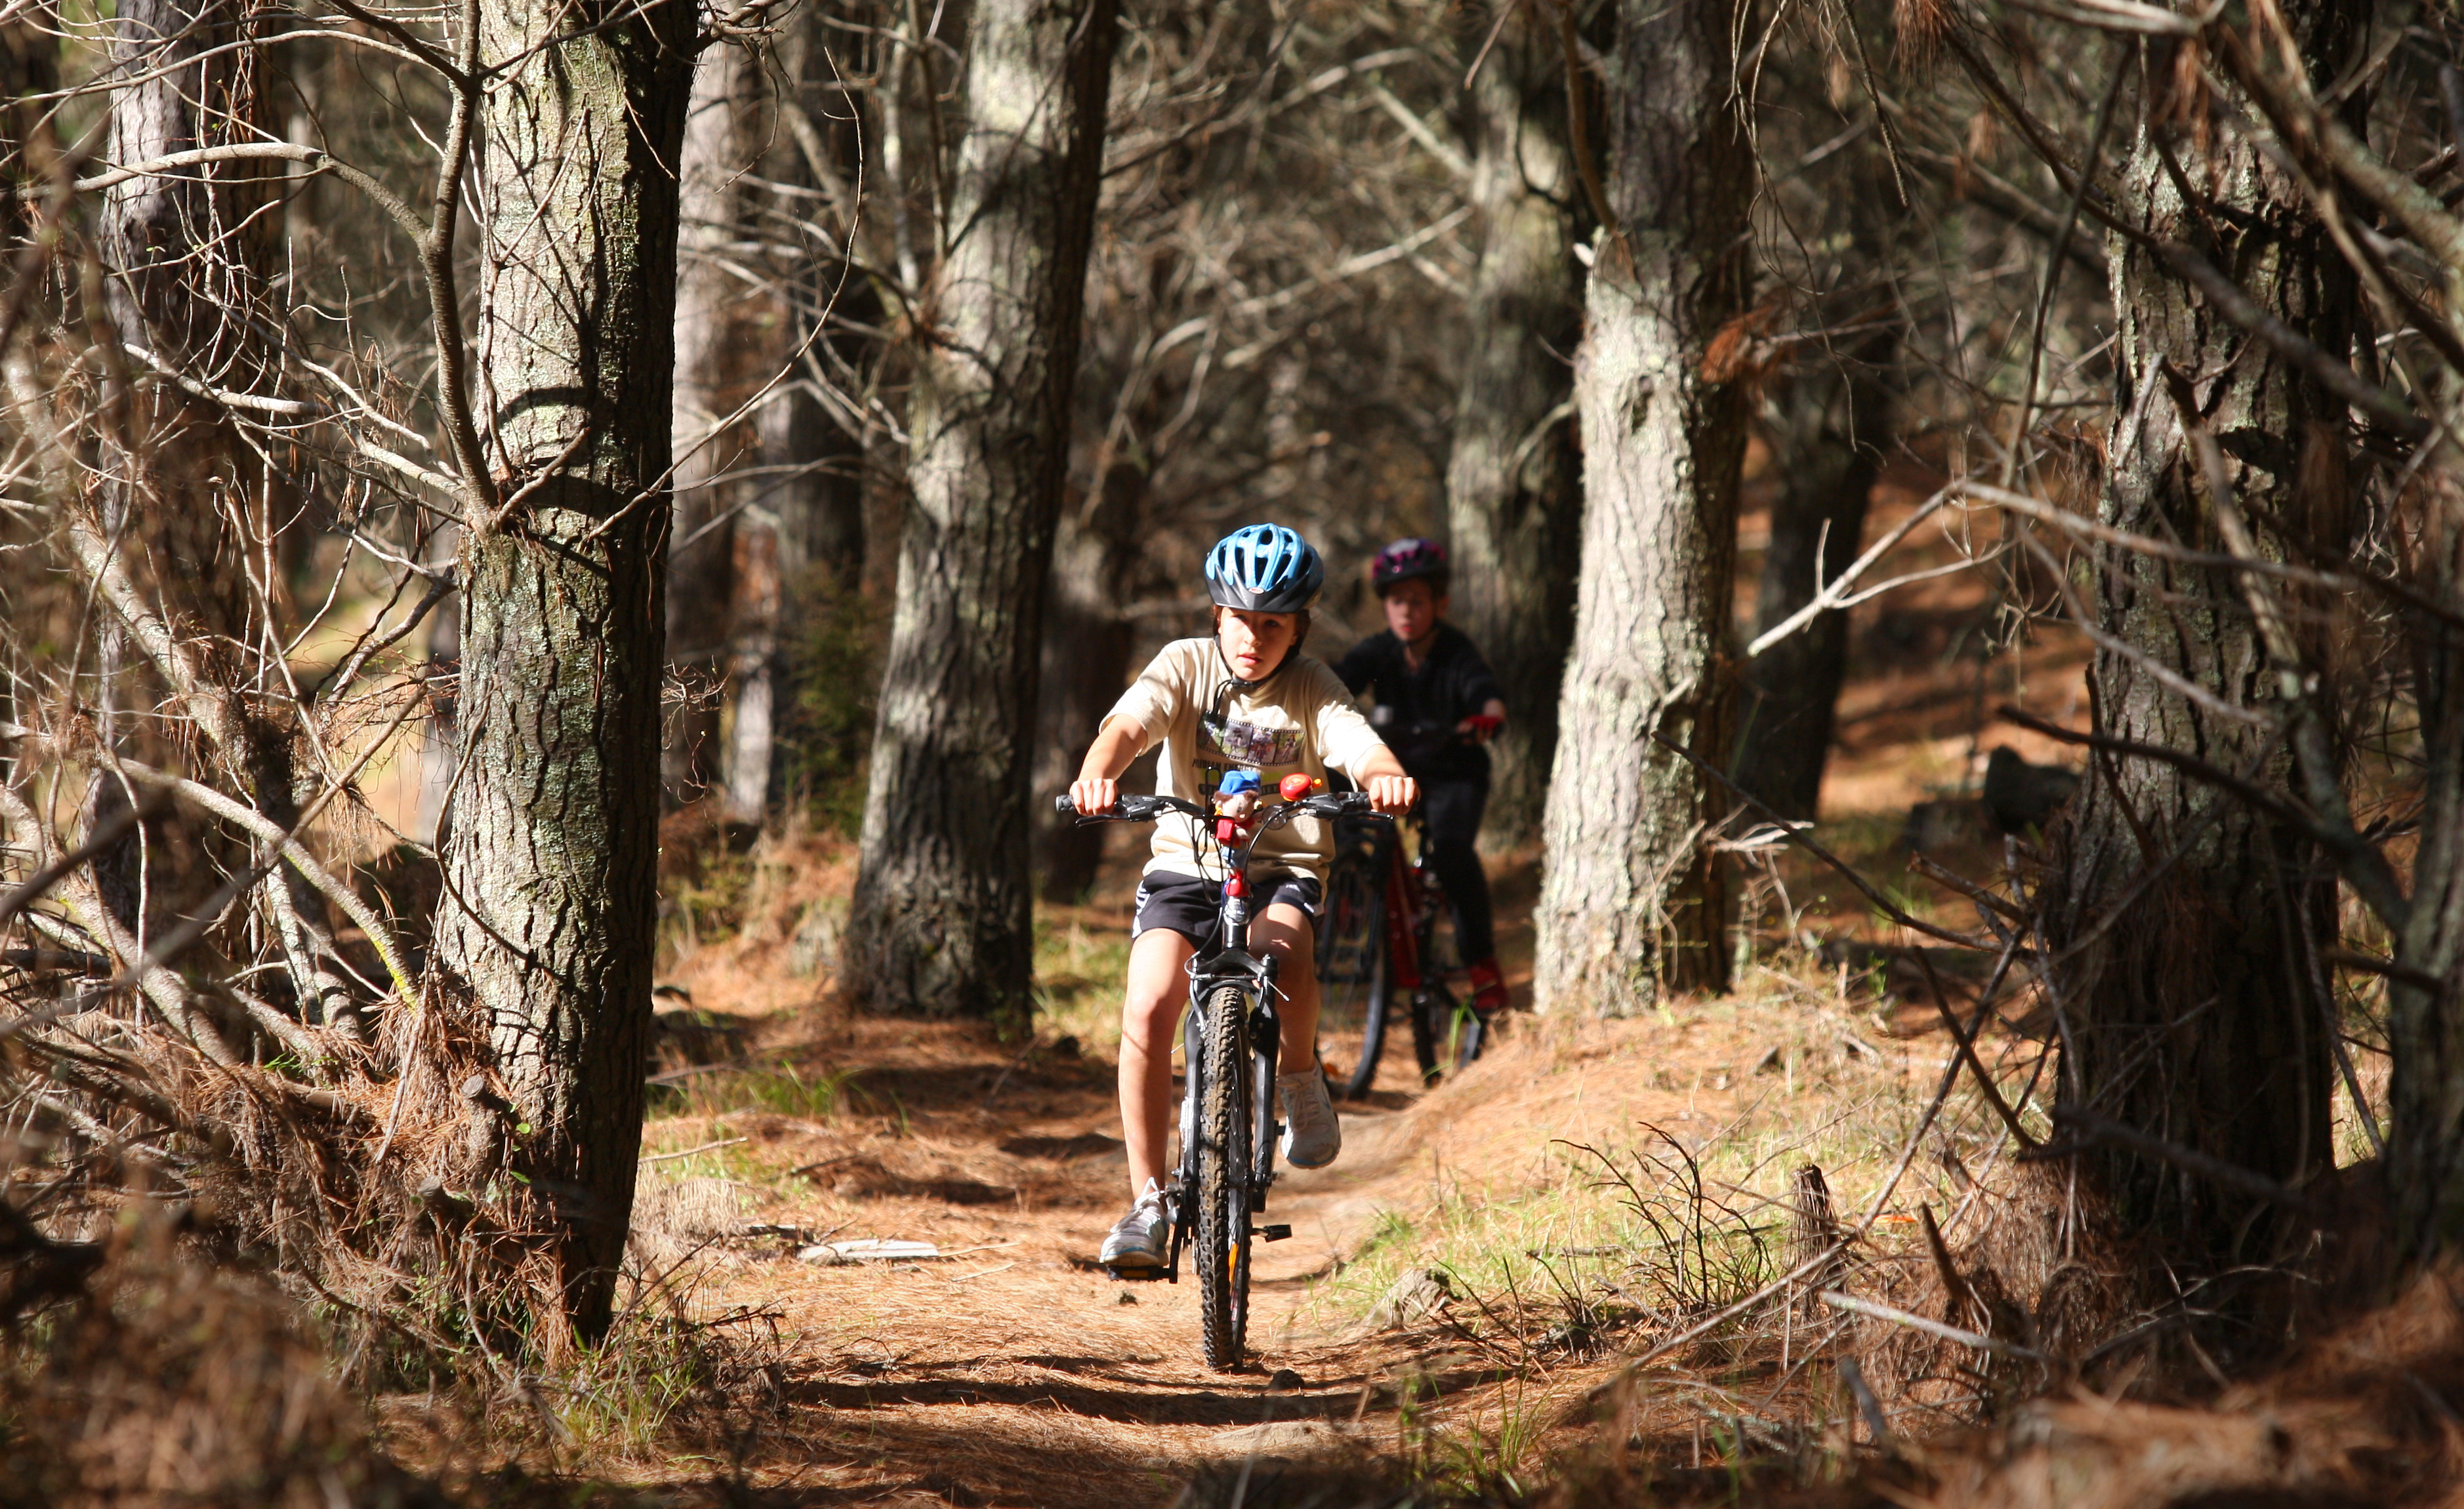 bfcb4c38870 Auckland's best places to mountain bike - NZ Herald